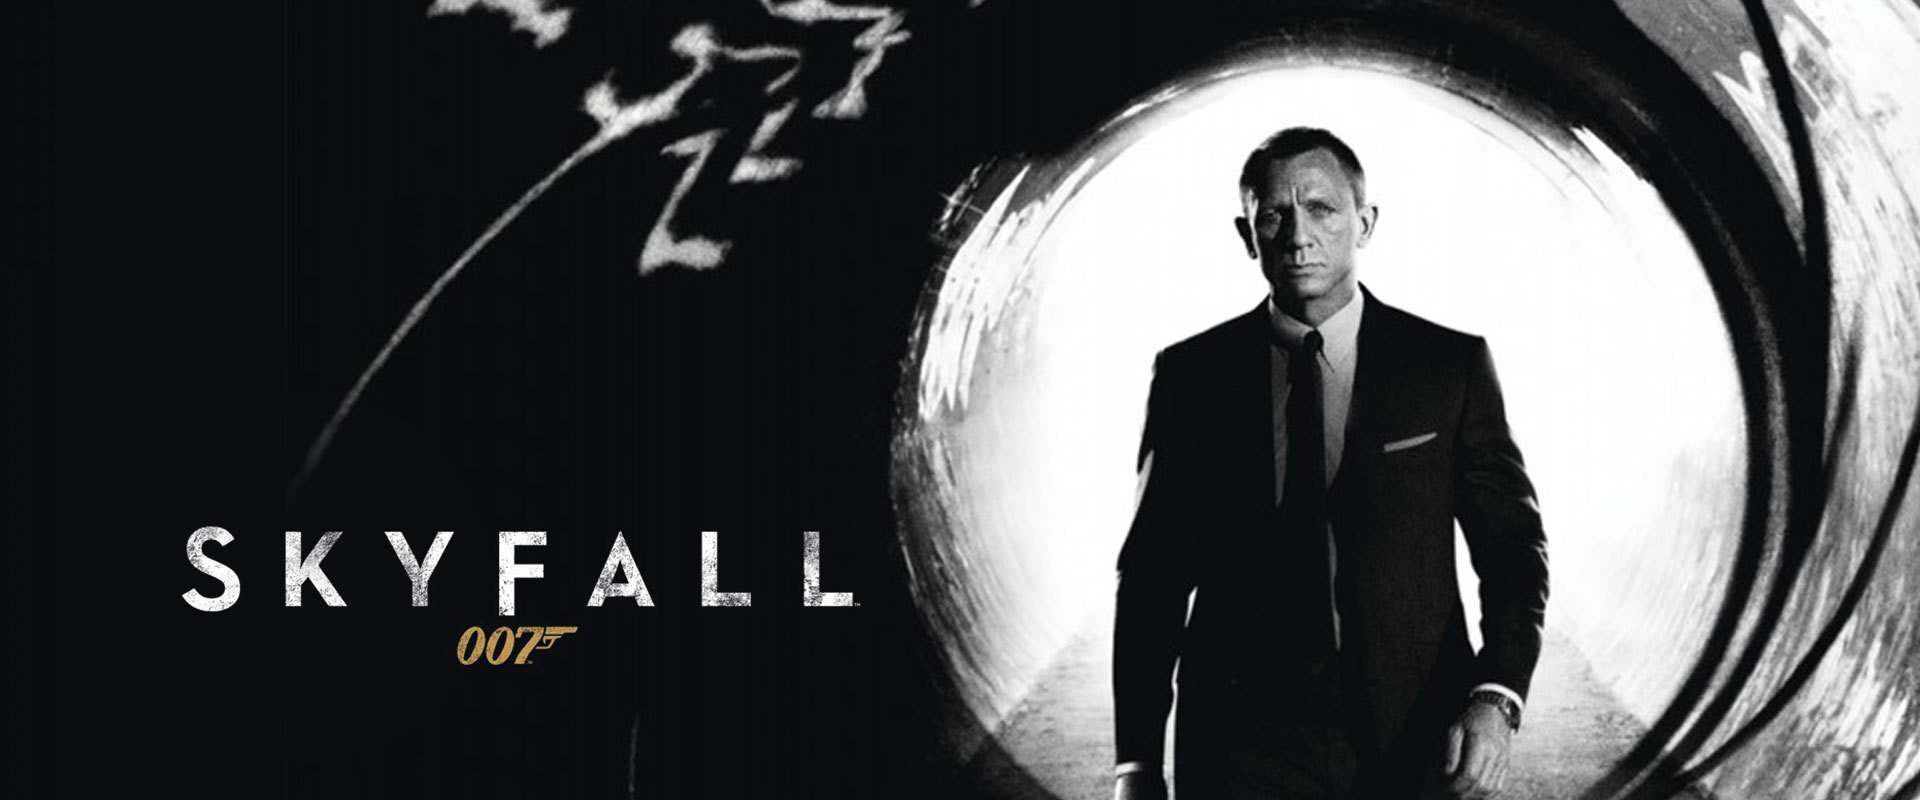 Skyfall background 1